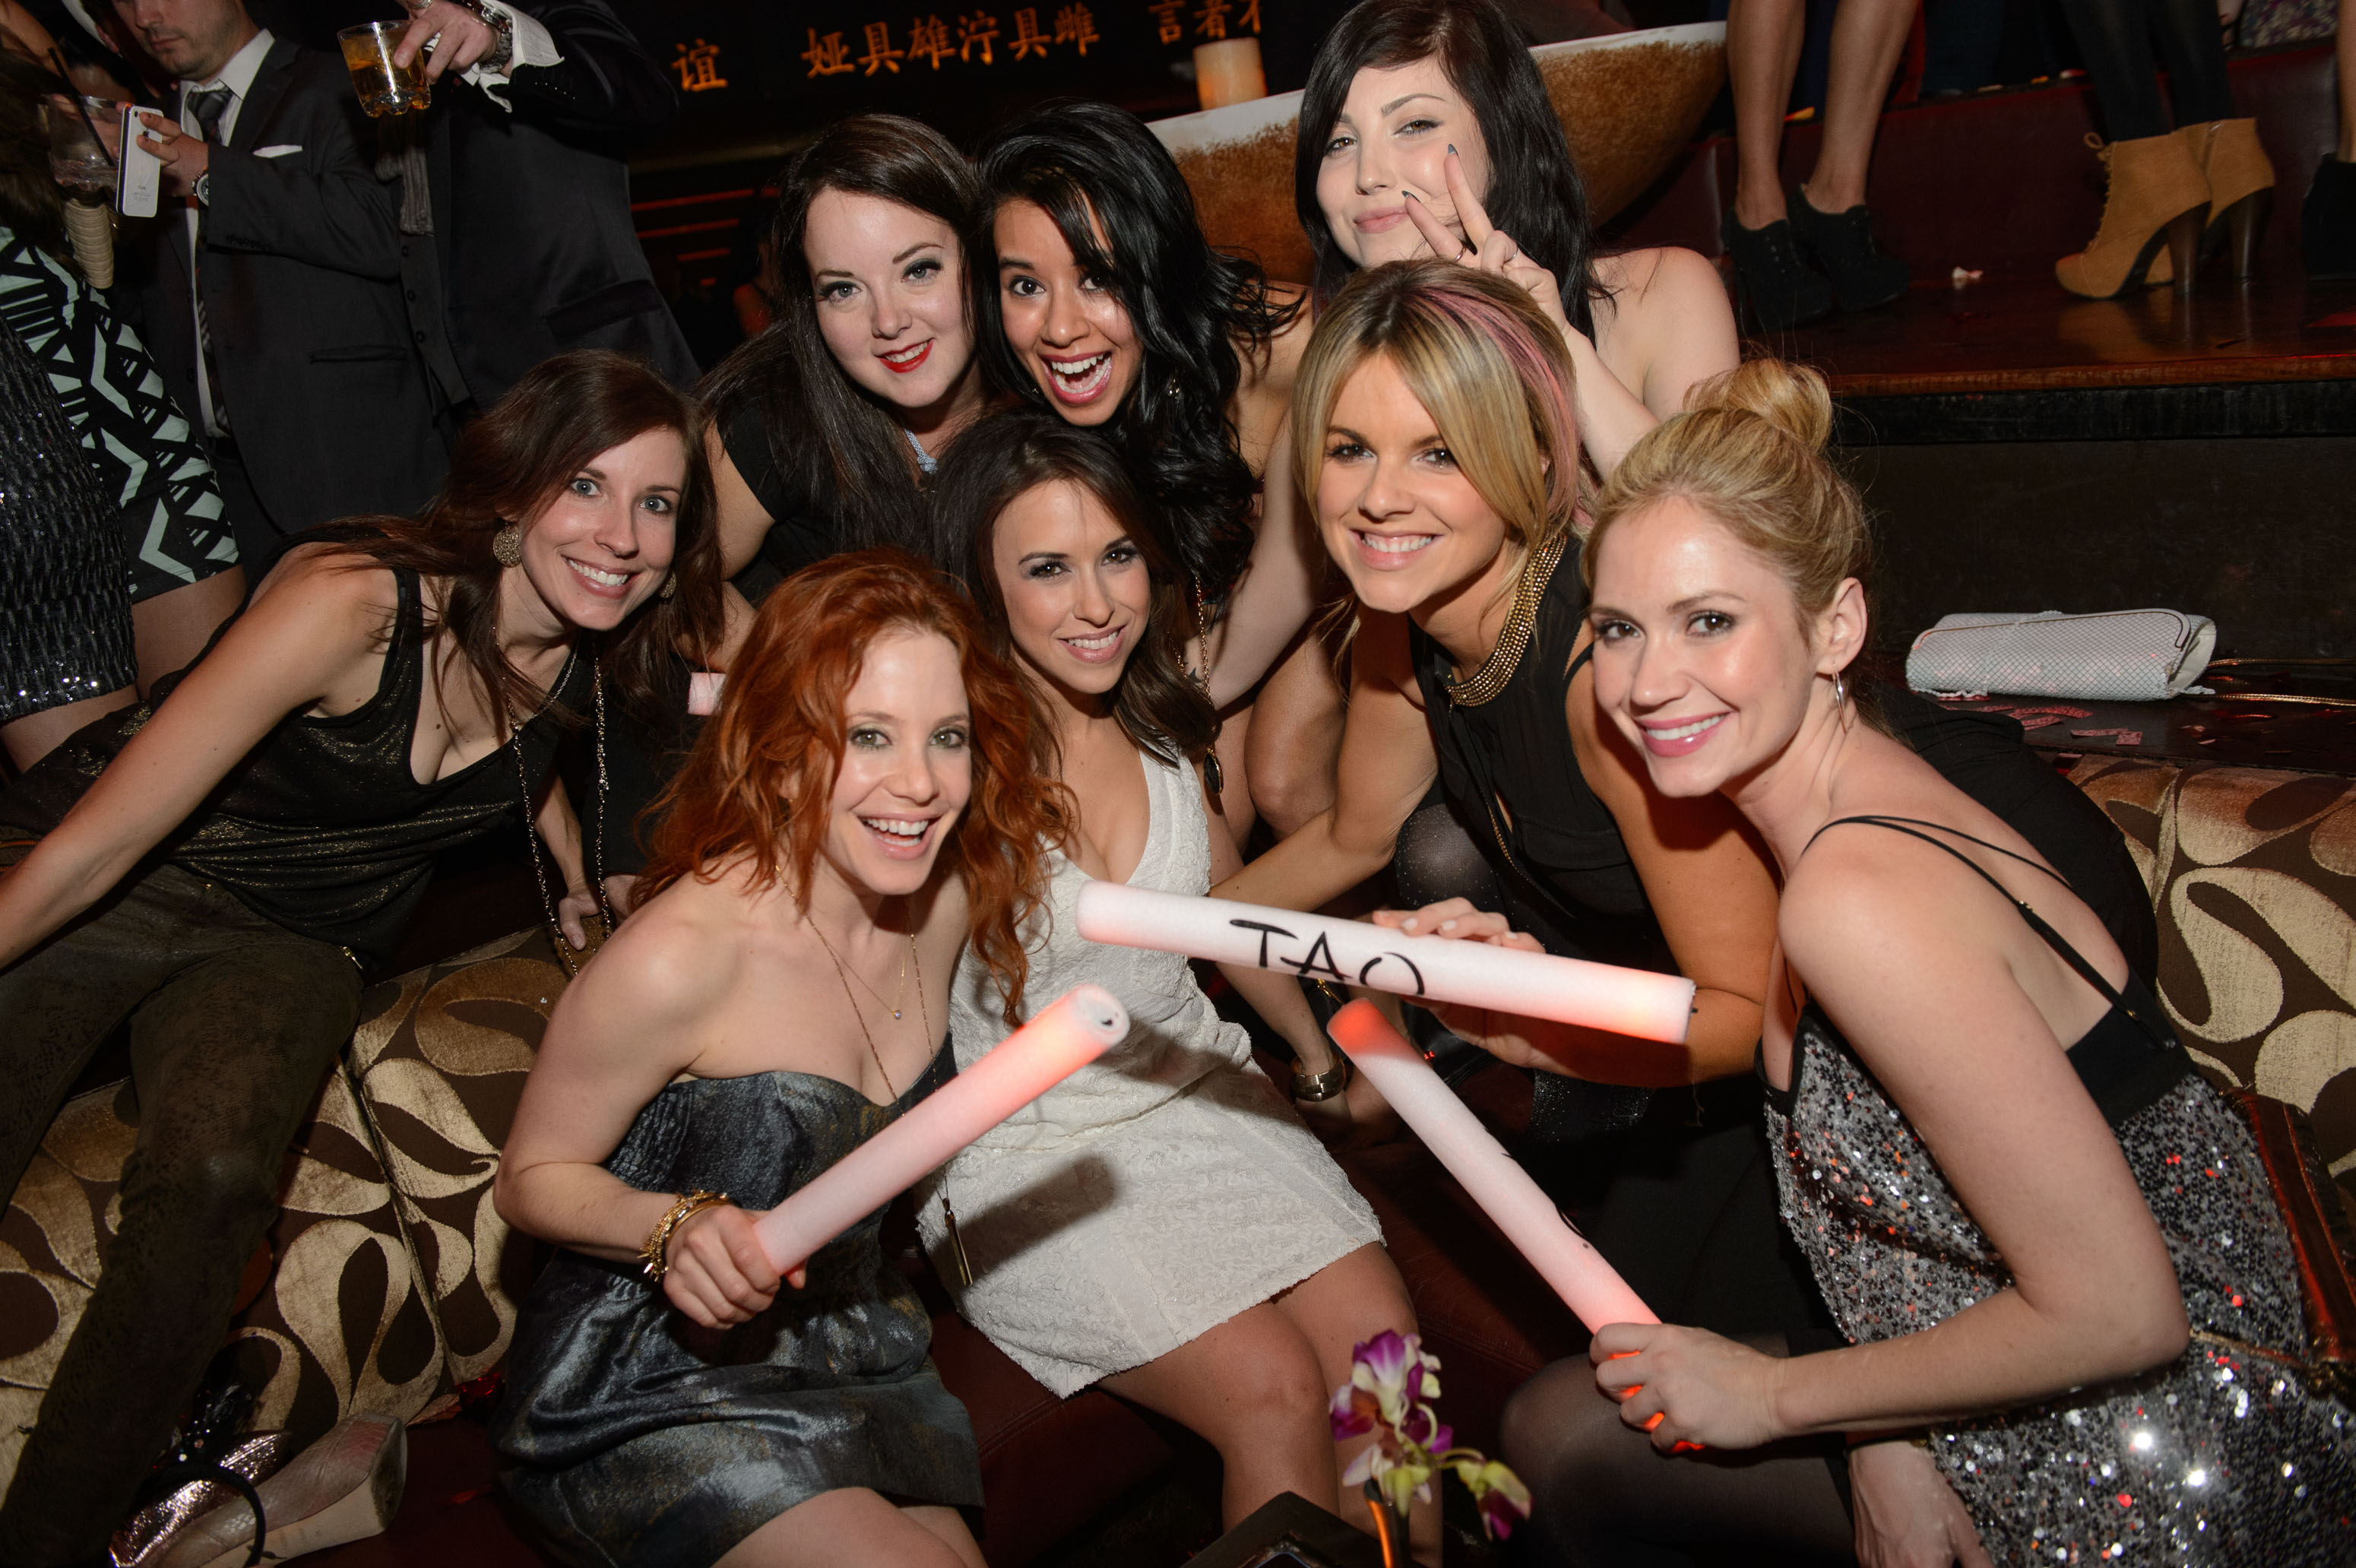 Amy Davidson Xxx december star shots: your one-stop look at the hottest